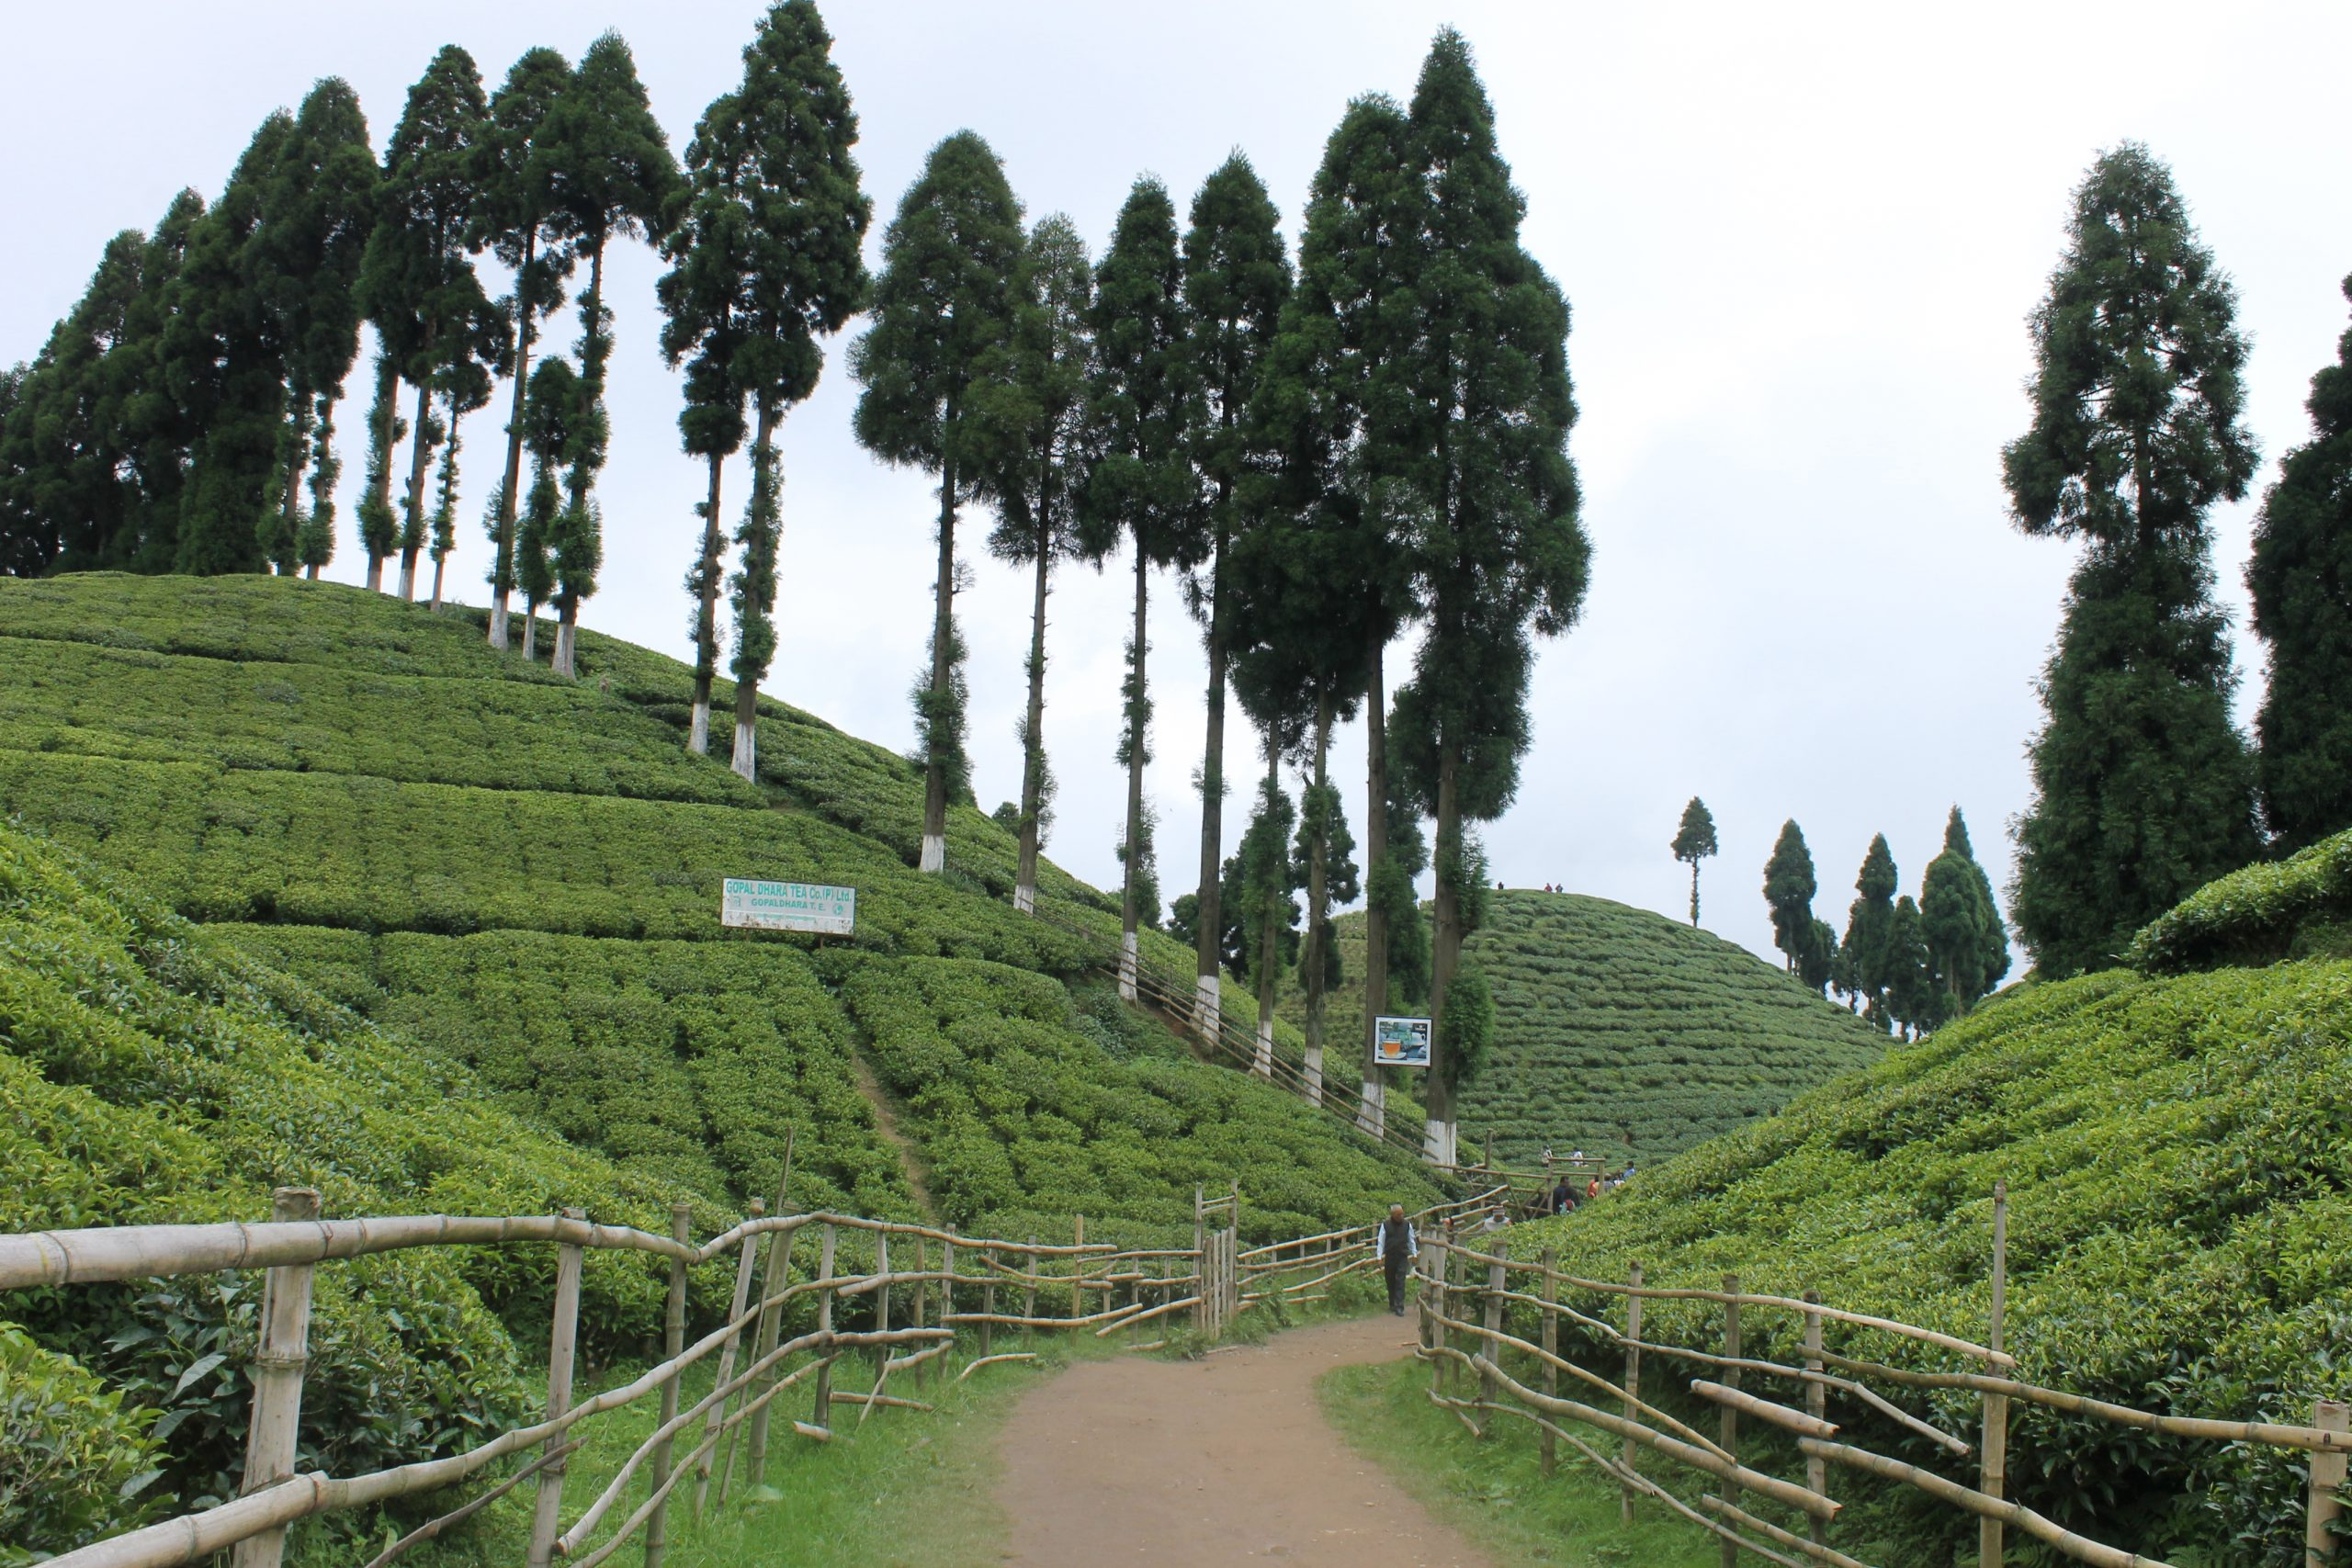 Tea farming in Darjeeling